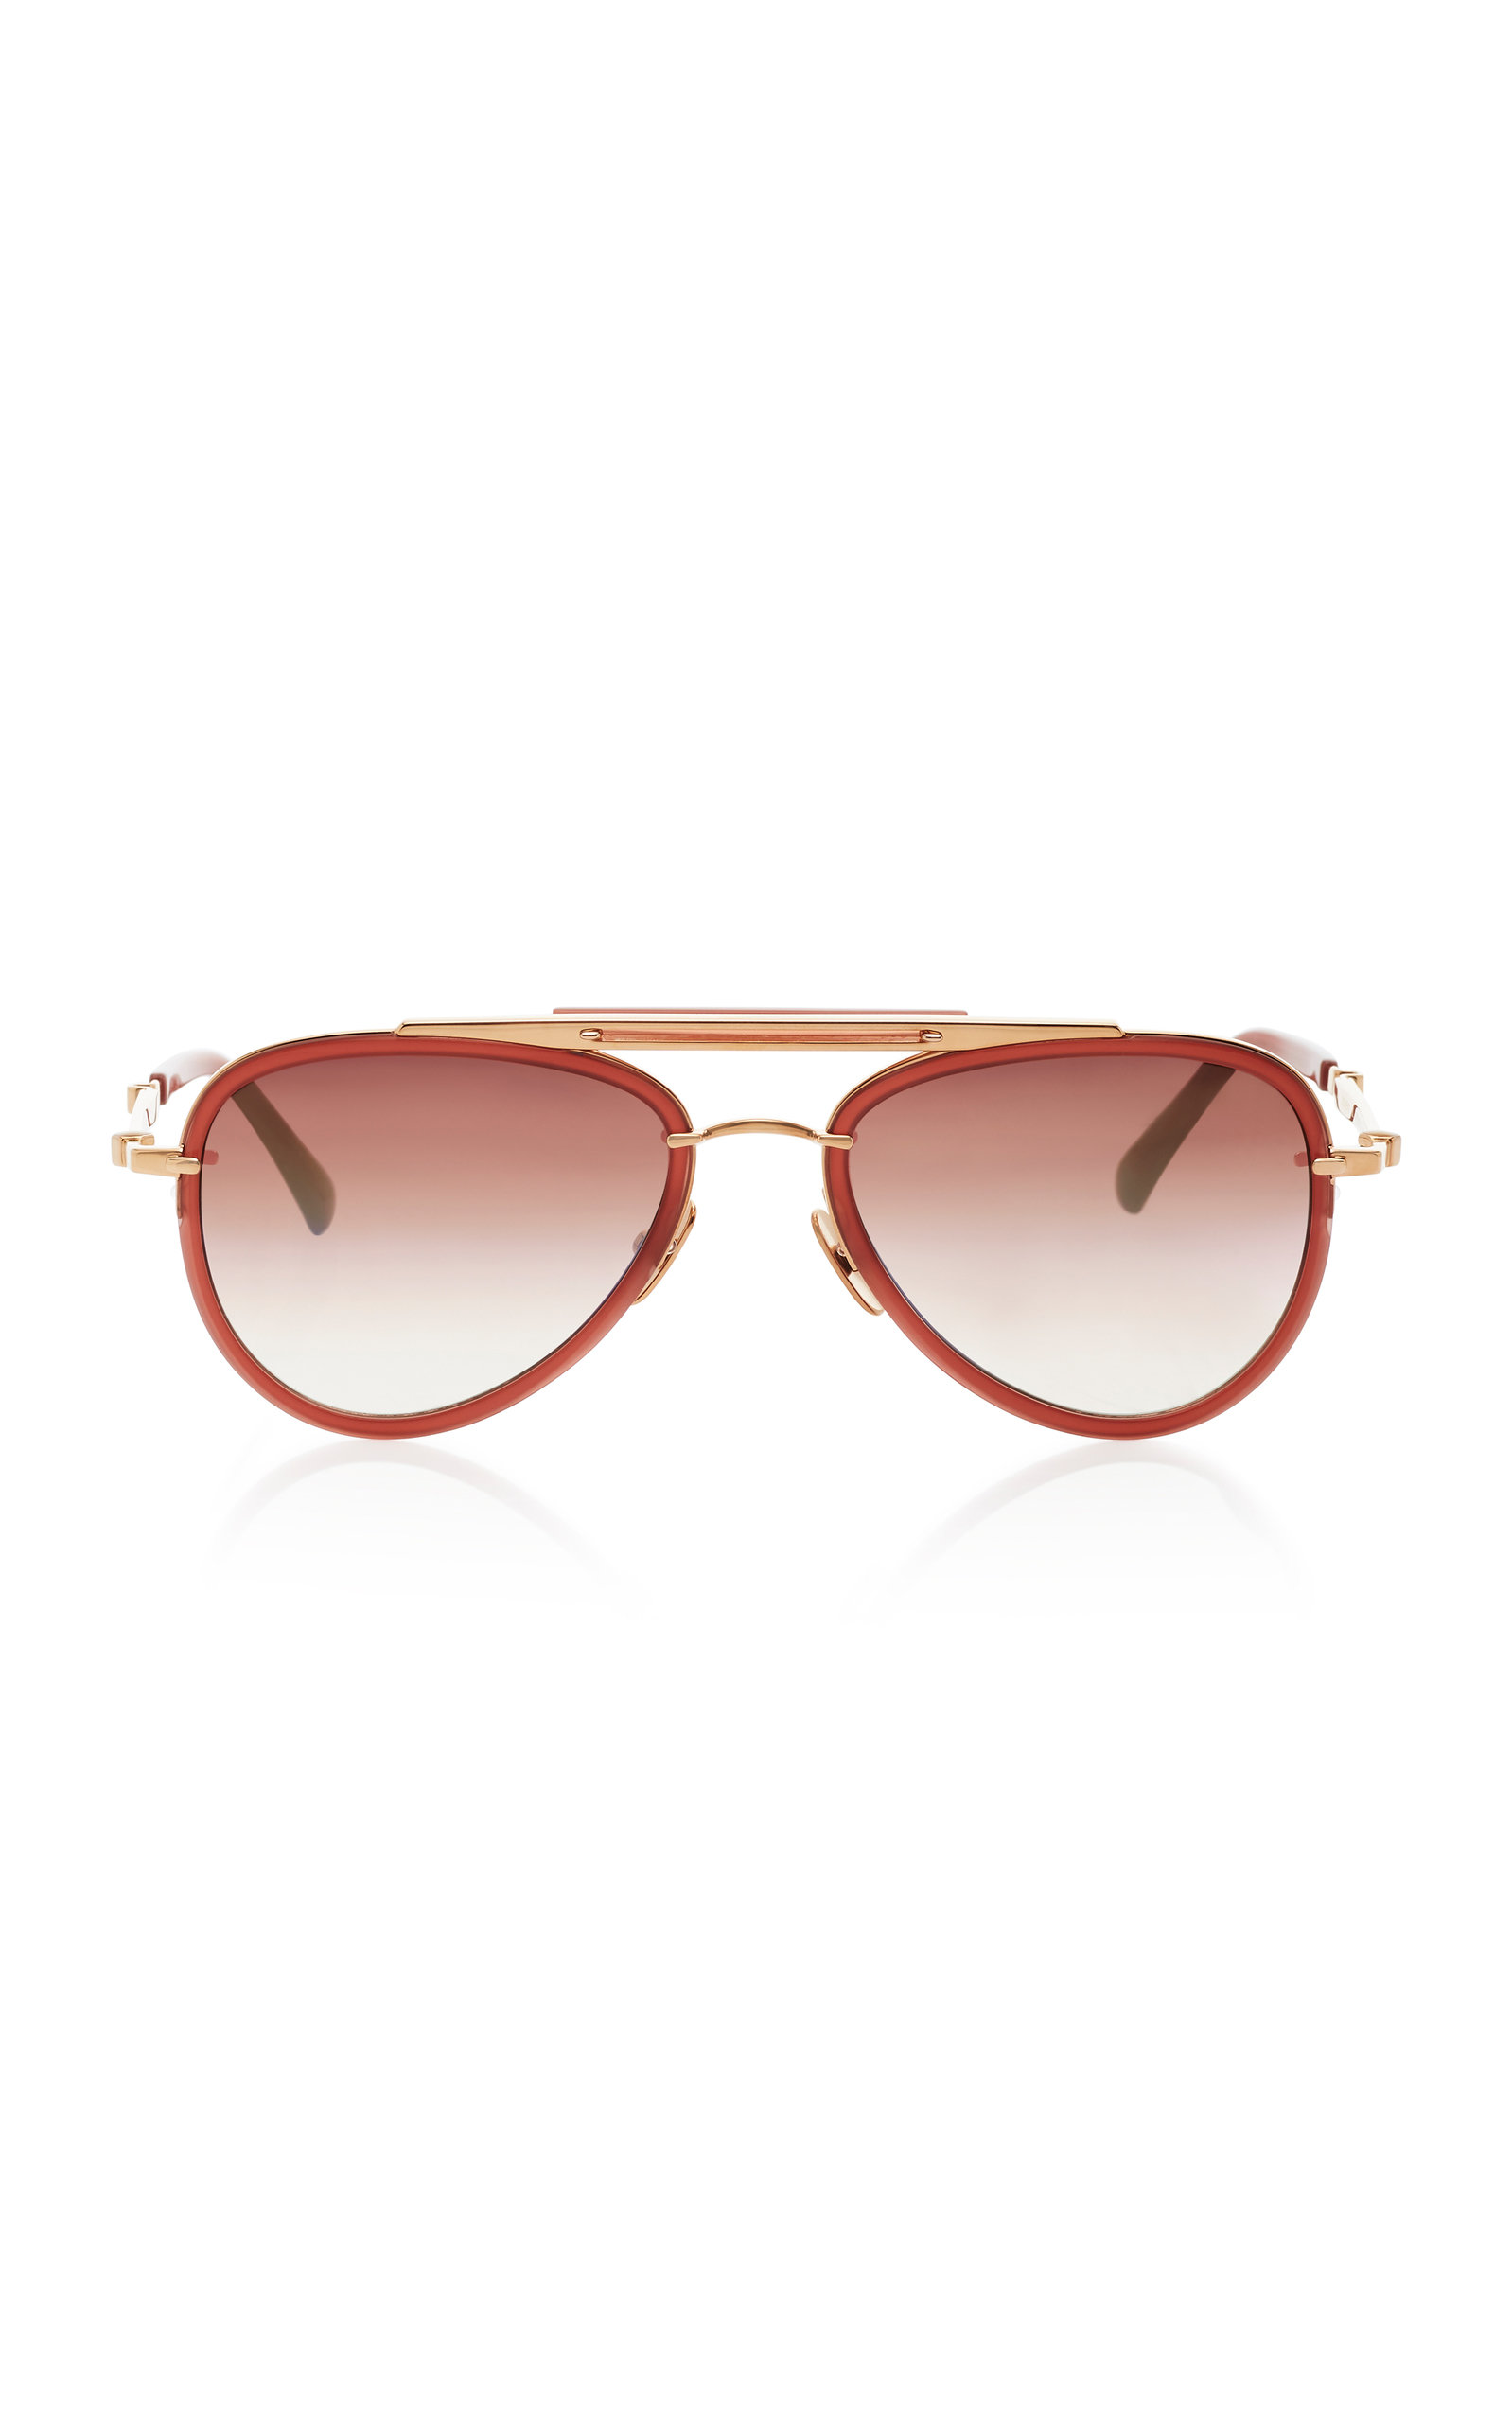 c72ce0dcc Doheny SL54 Aviator-Style Acetate and Metal Sunglasses by Mr. Leight ...